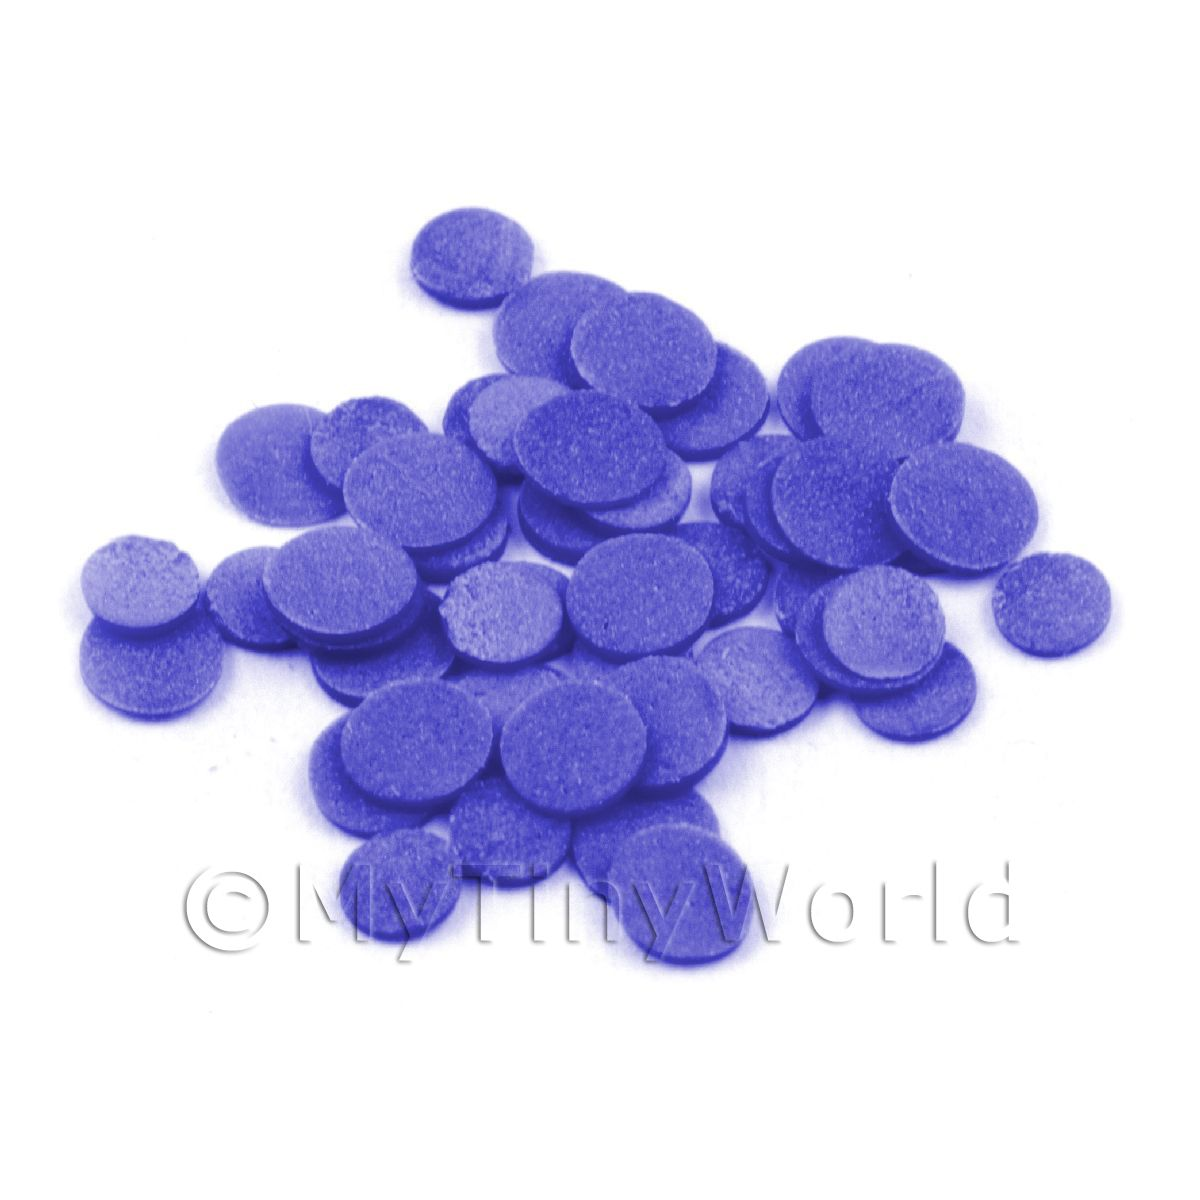 50 Violet Blue Polka Dot Cane Slices - Nail Art (11NS21)